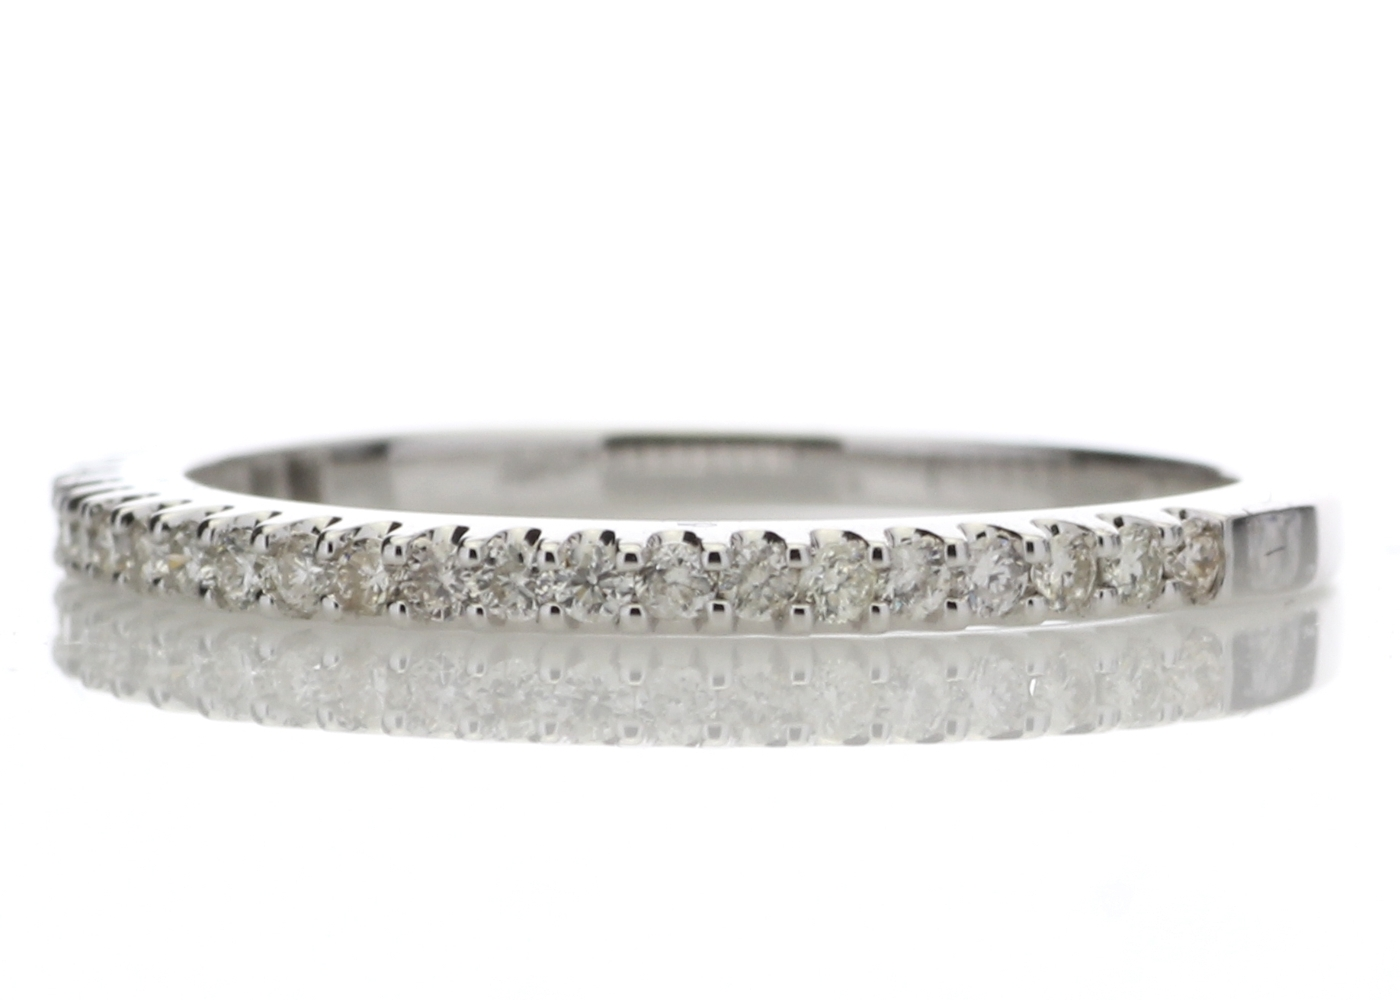 9ct White Gold Diamond Half Eternity Ring 0.25 Carats - Image 2 of 4